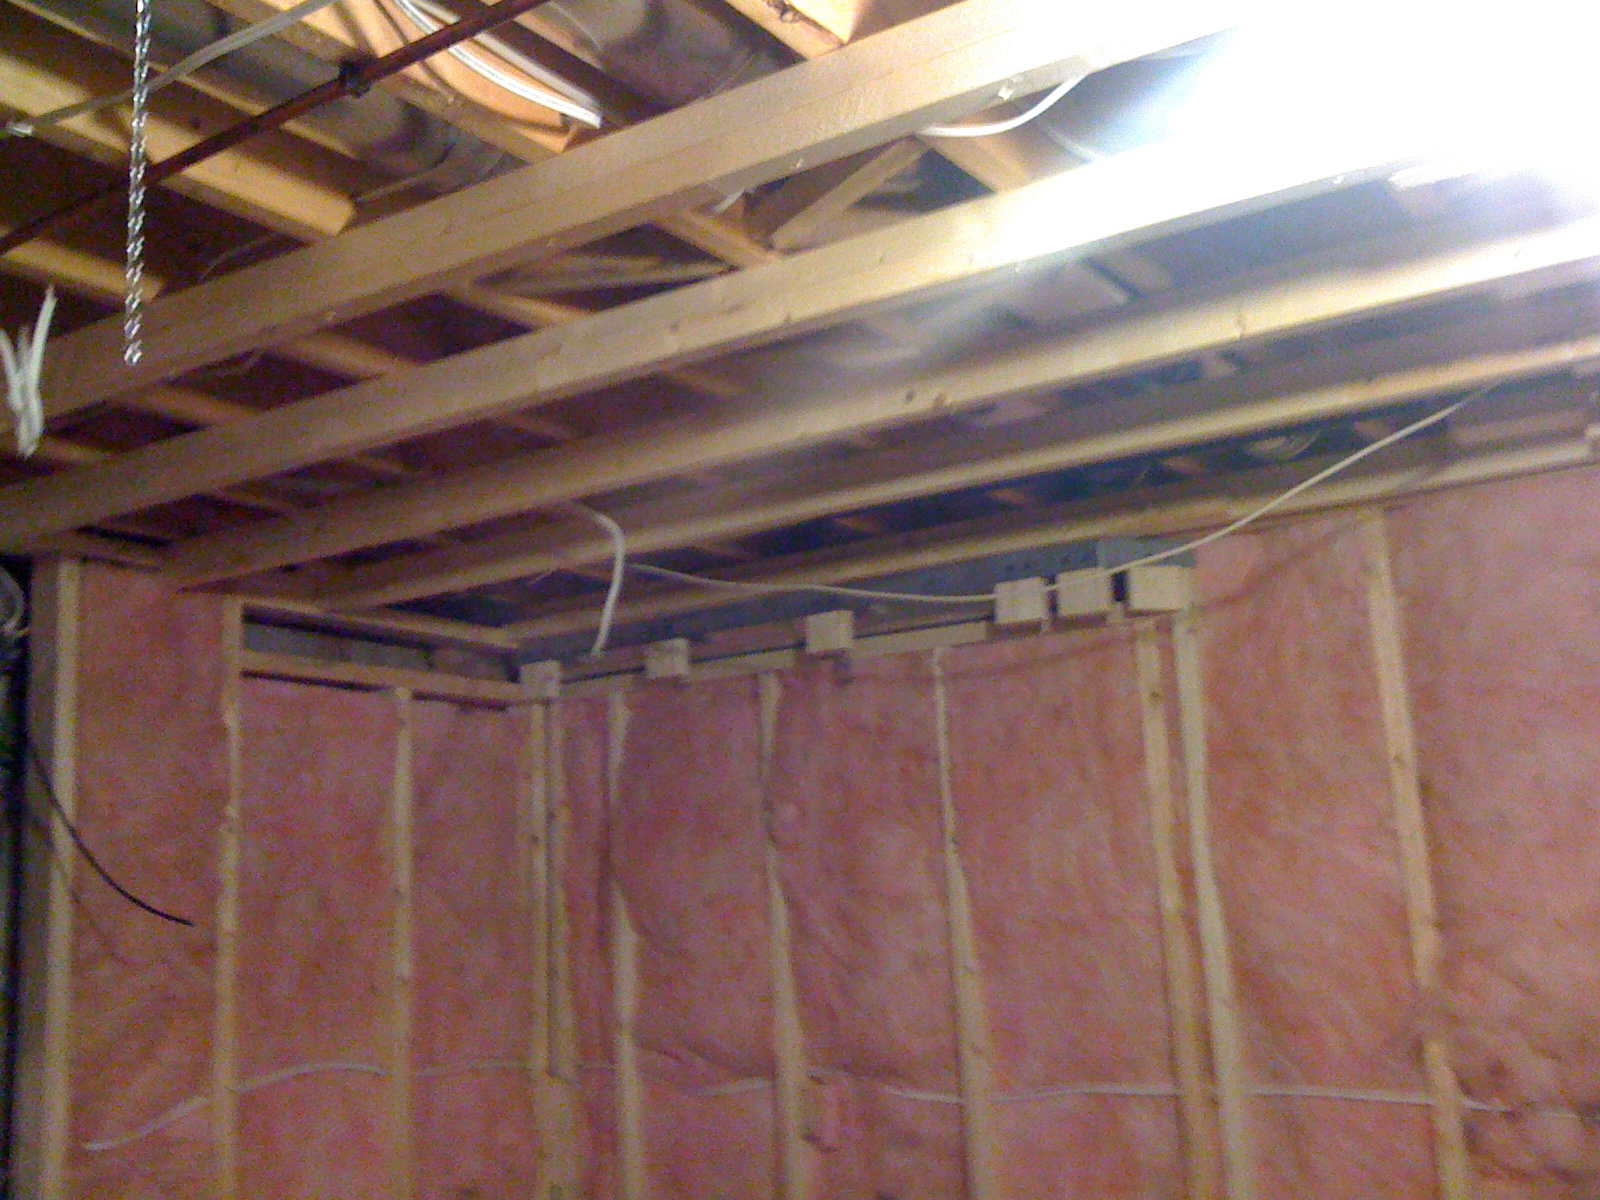 Strapped ceiling ready for drywall